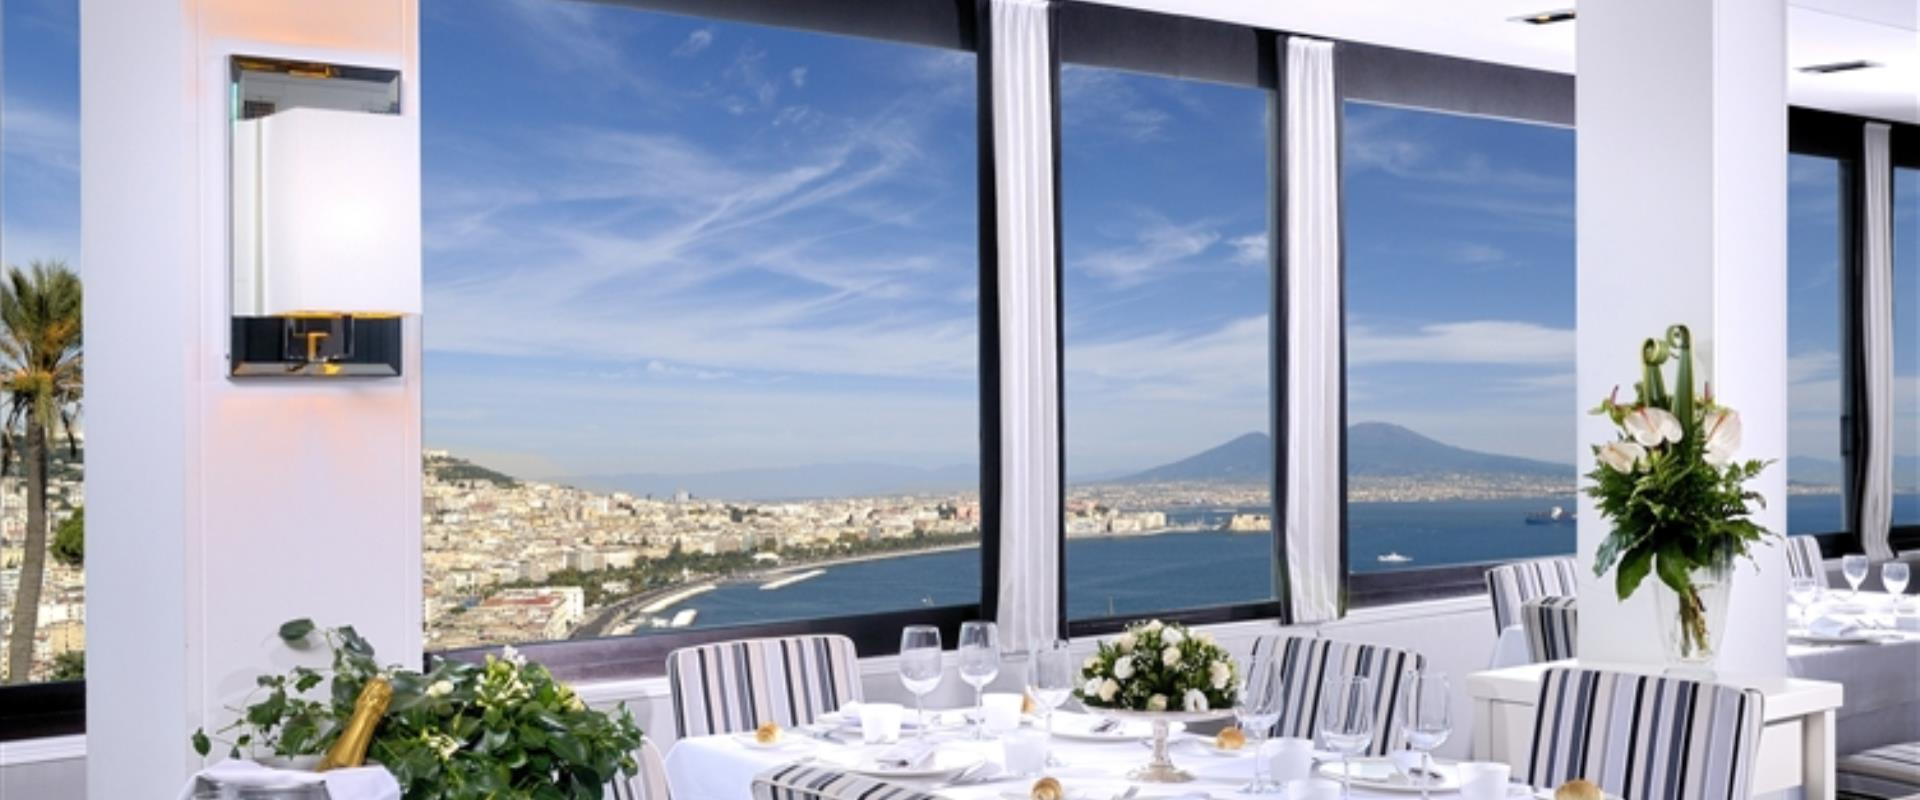 Looking for a hotel in Napoli with a great restaurant? Book at the BW Signature Collection Hotel Paradiso